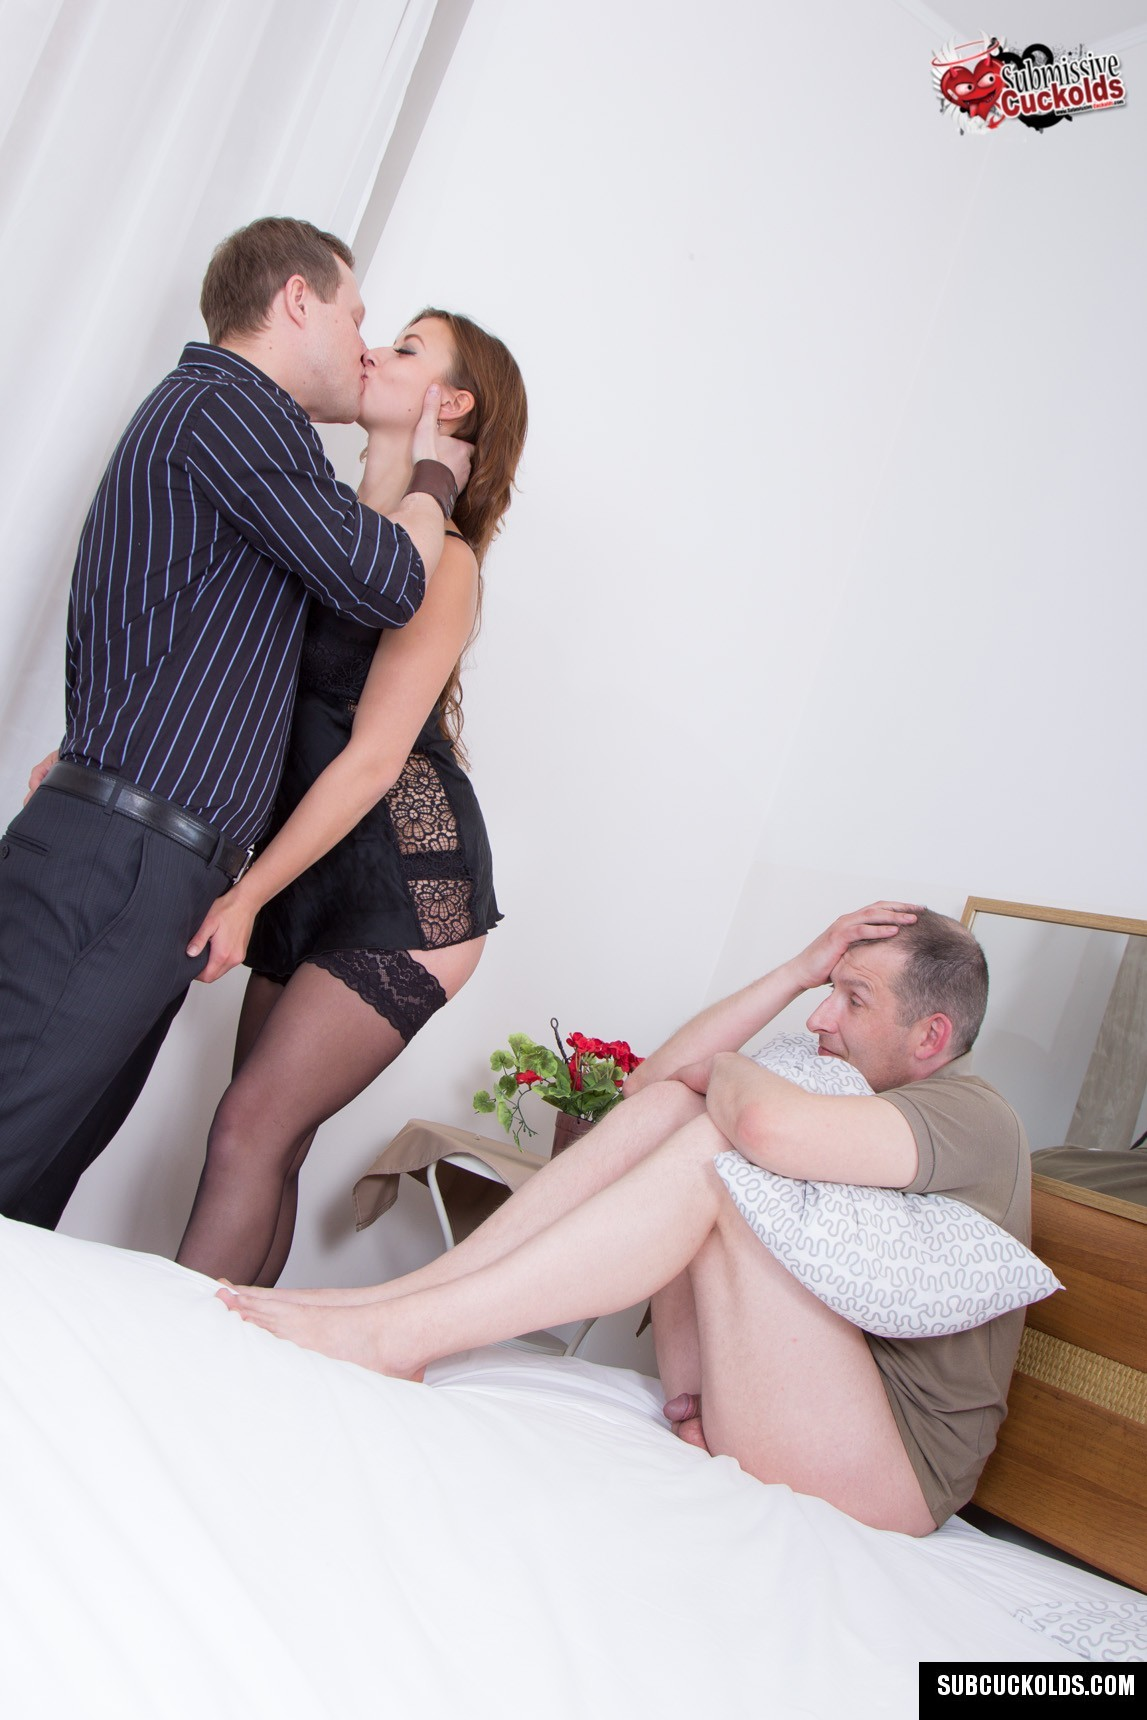 A young cuckold relationship part 3 - 1 part 2